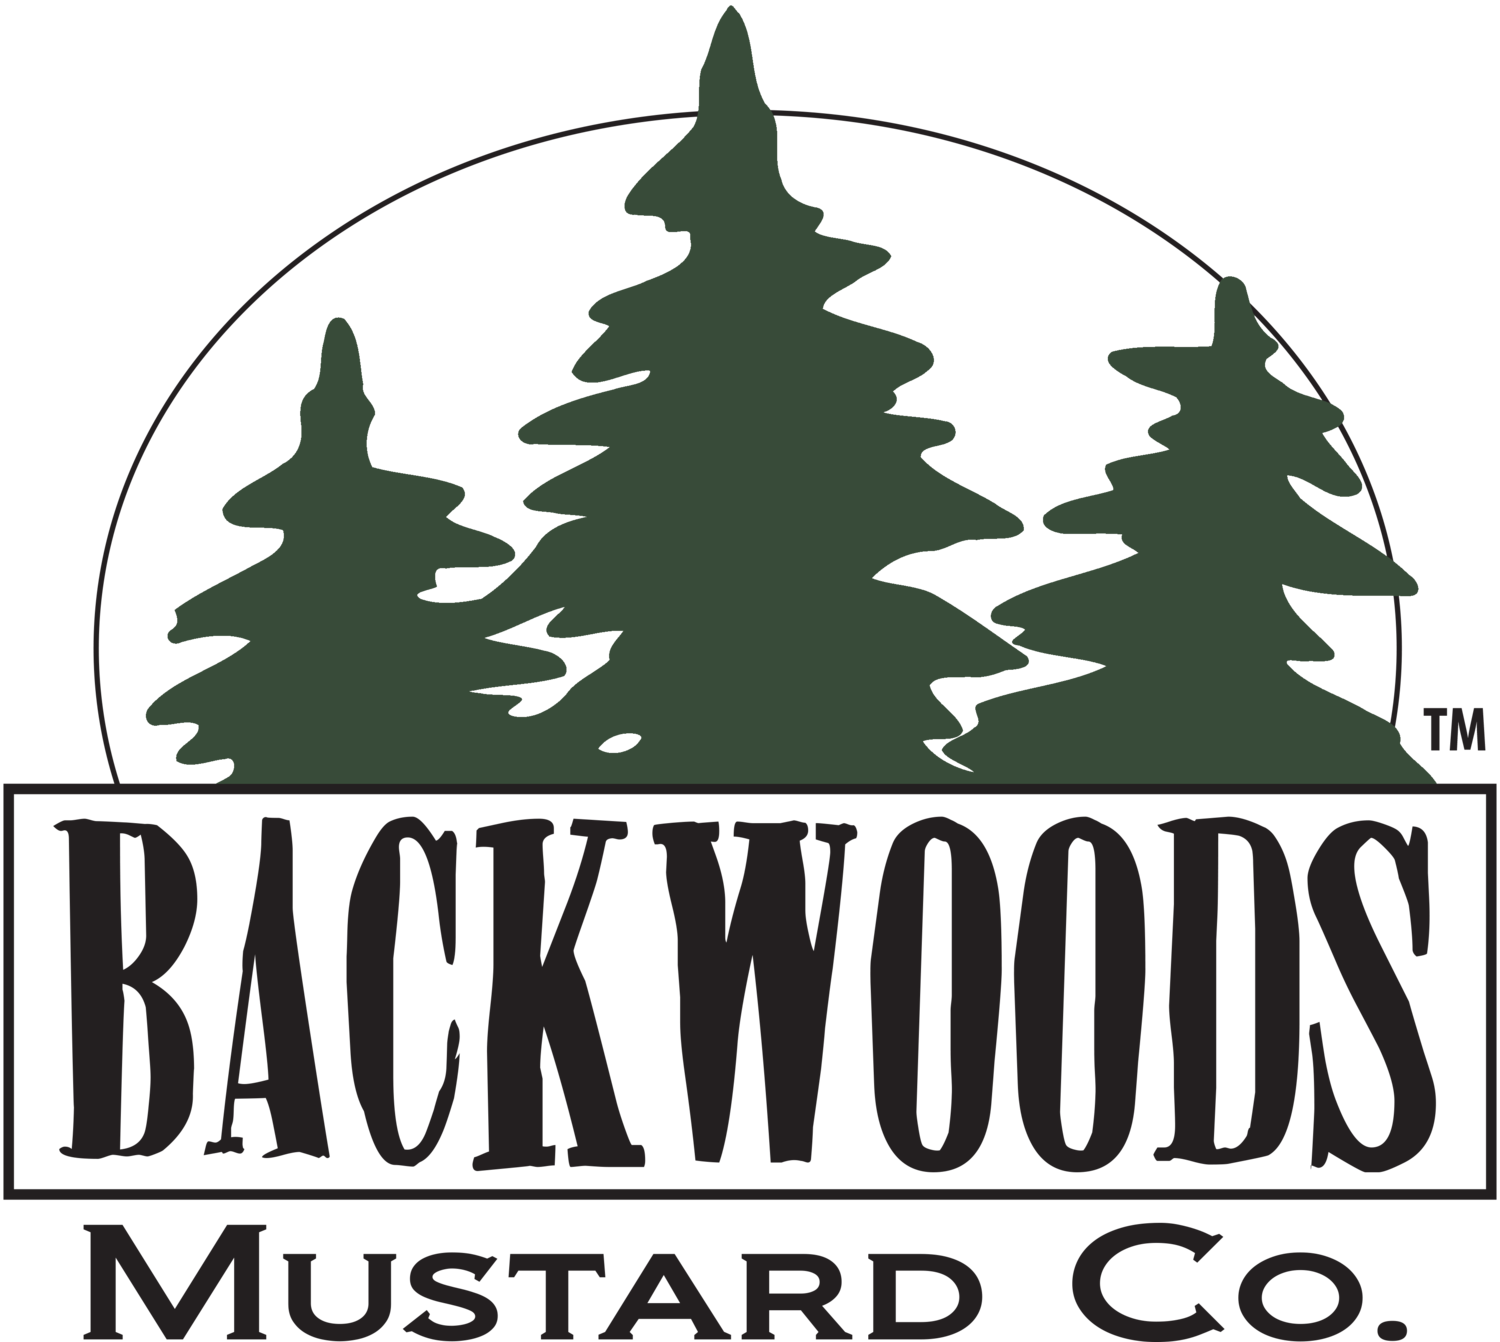 Backwoods Mustard Company - Craft Mustard Made In Michigan